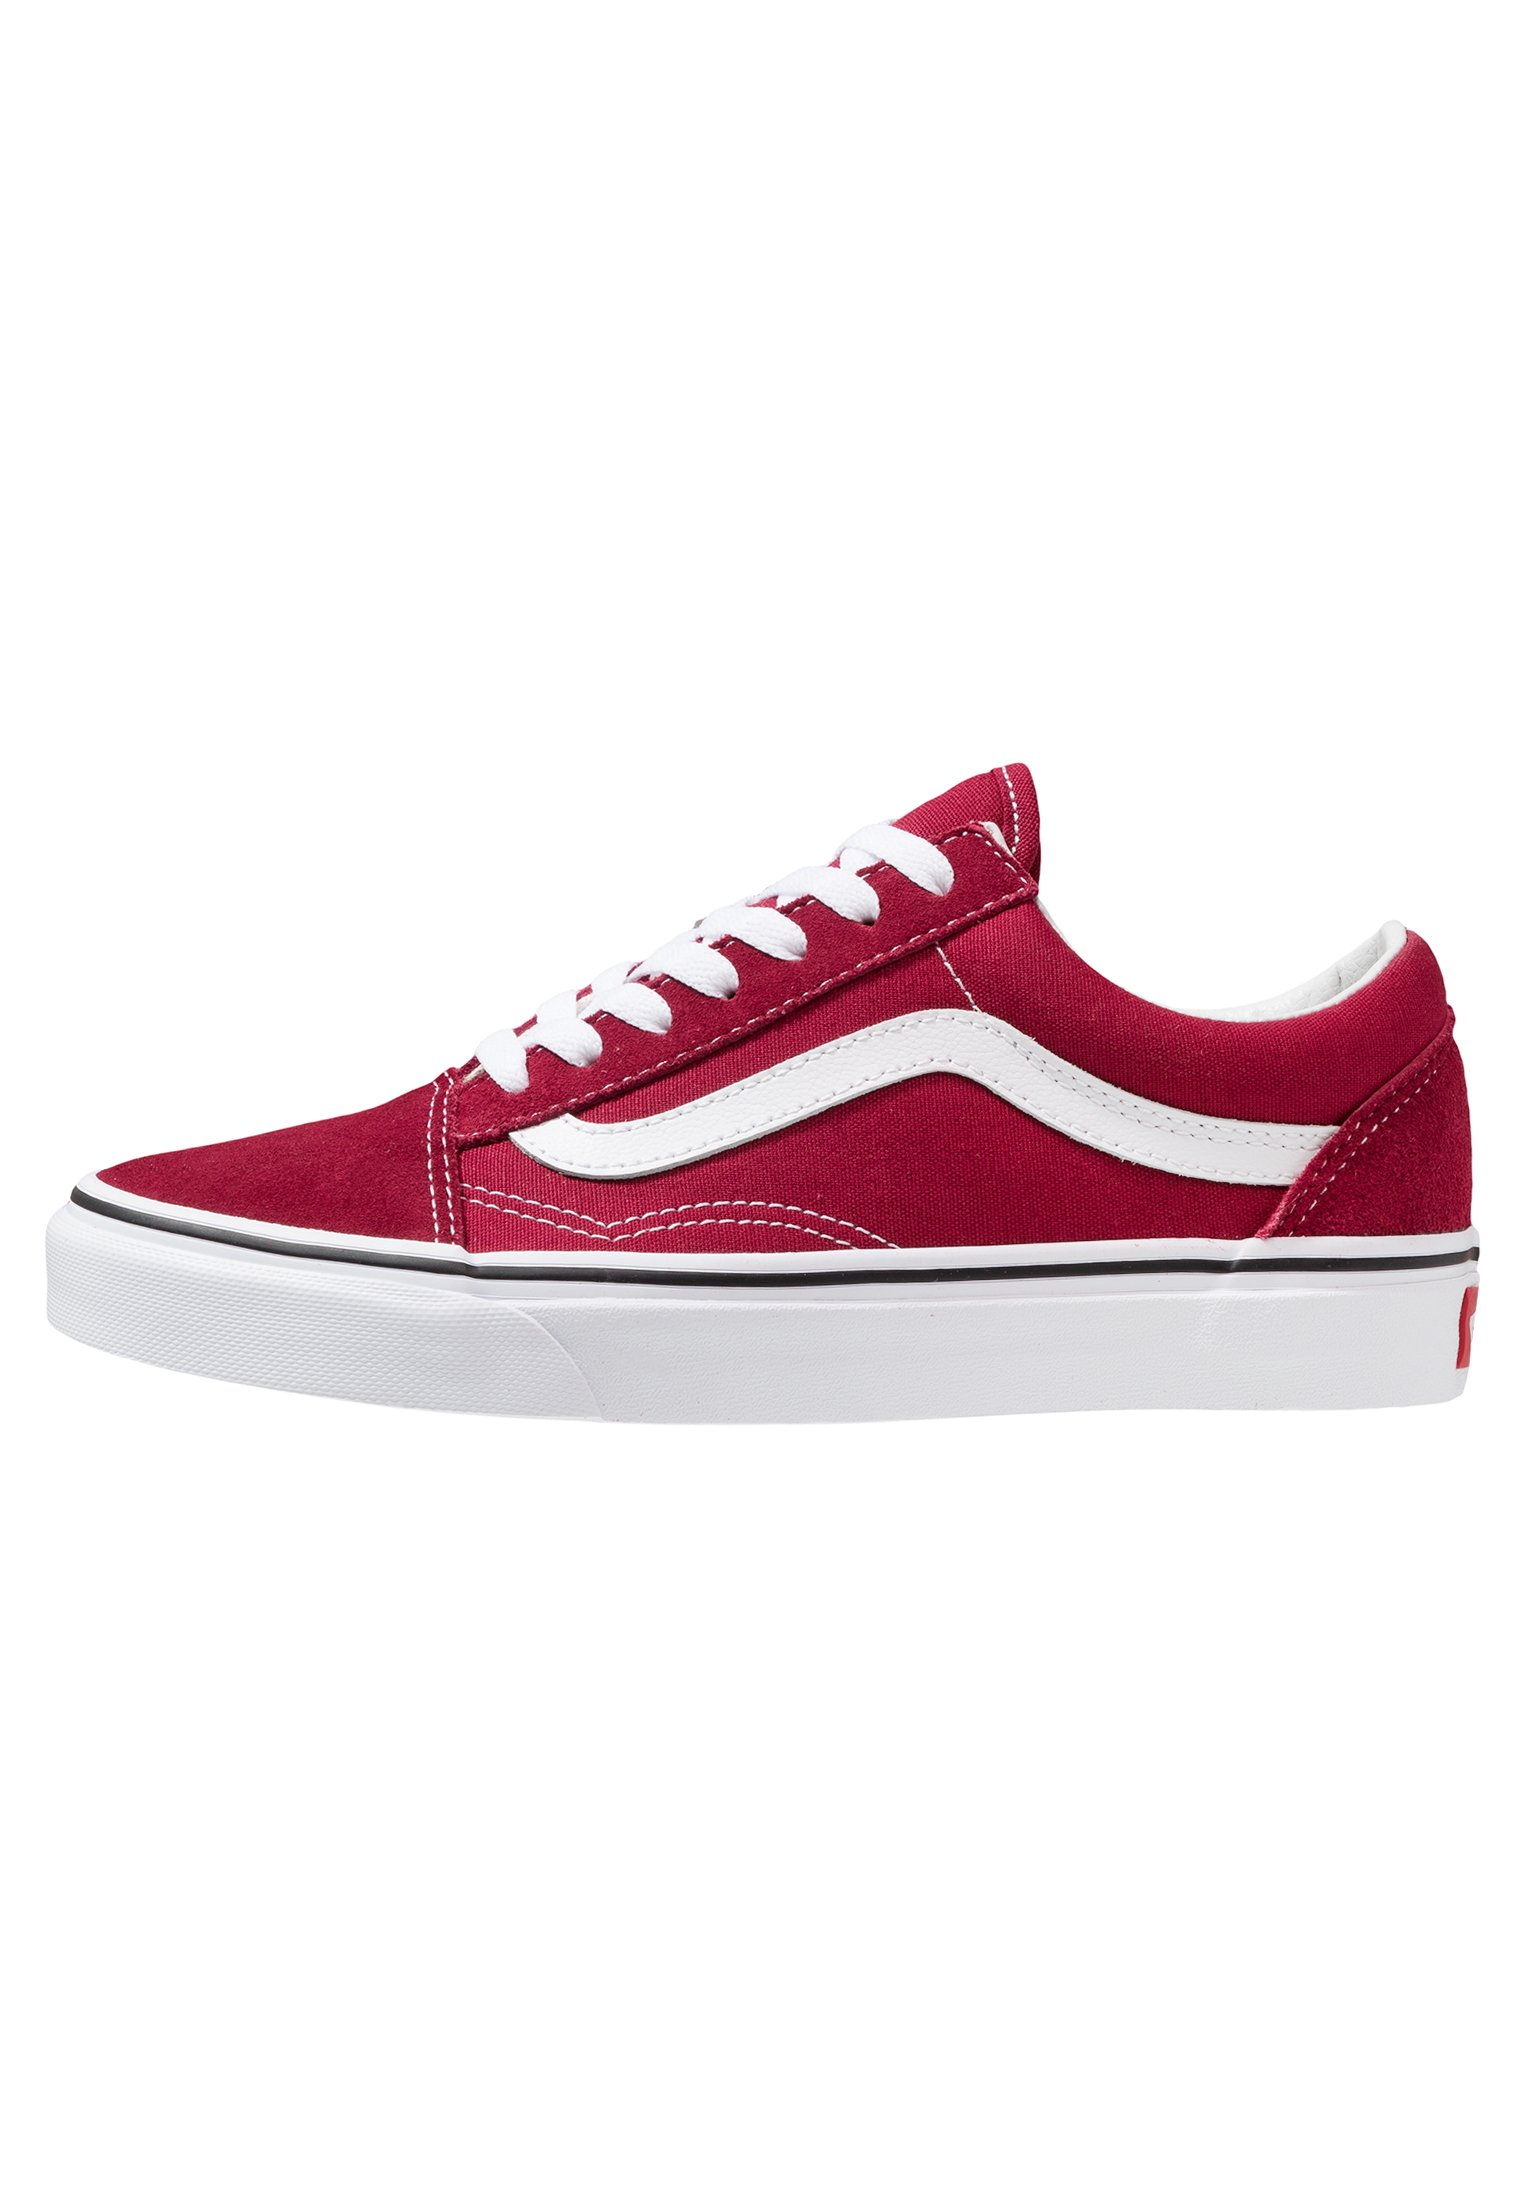 OLD SKOOL Sneaker low rumba redtrue white